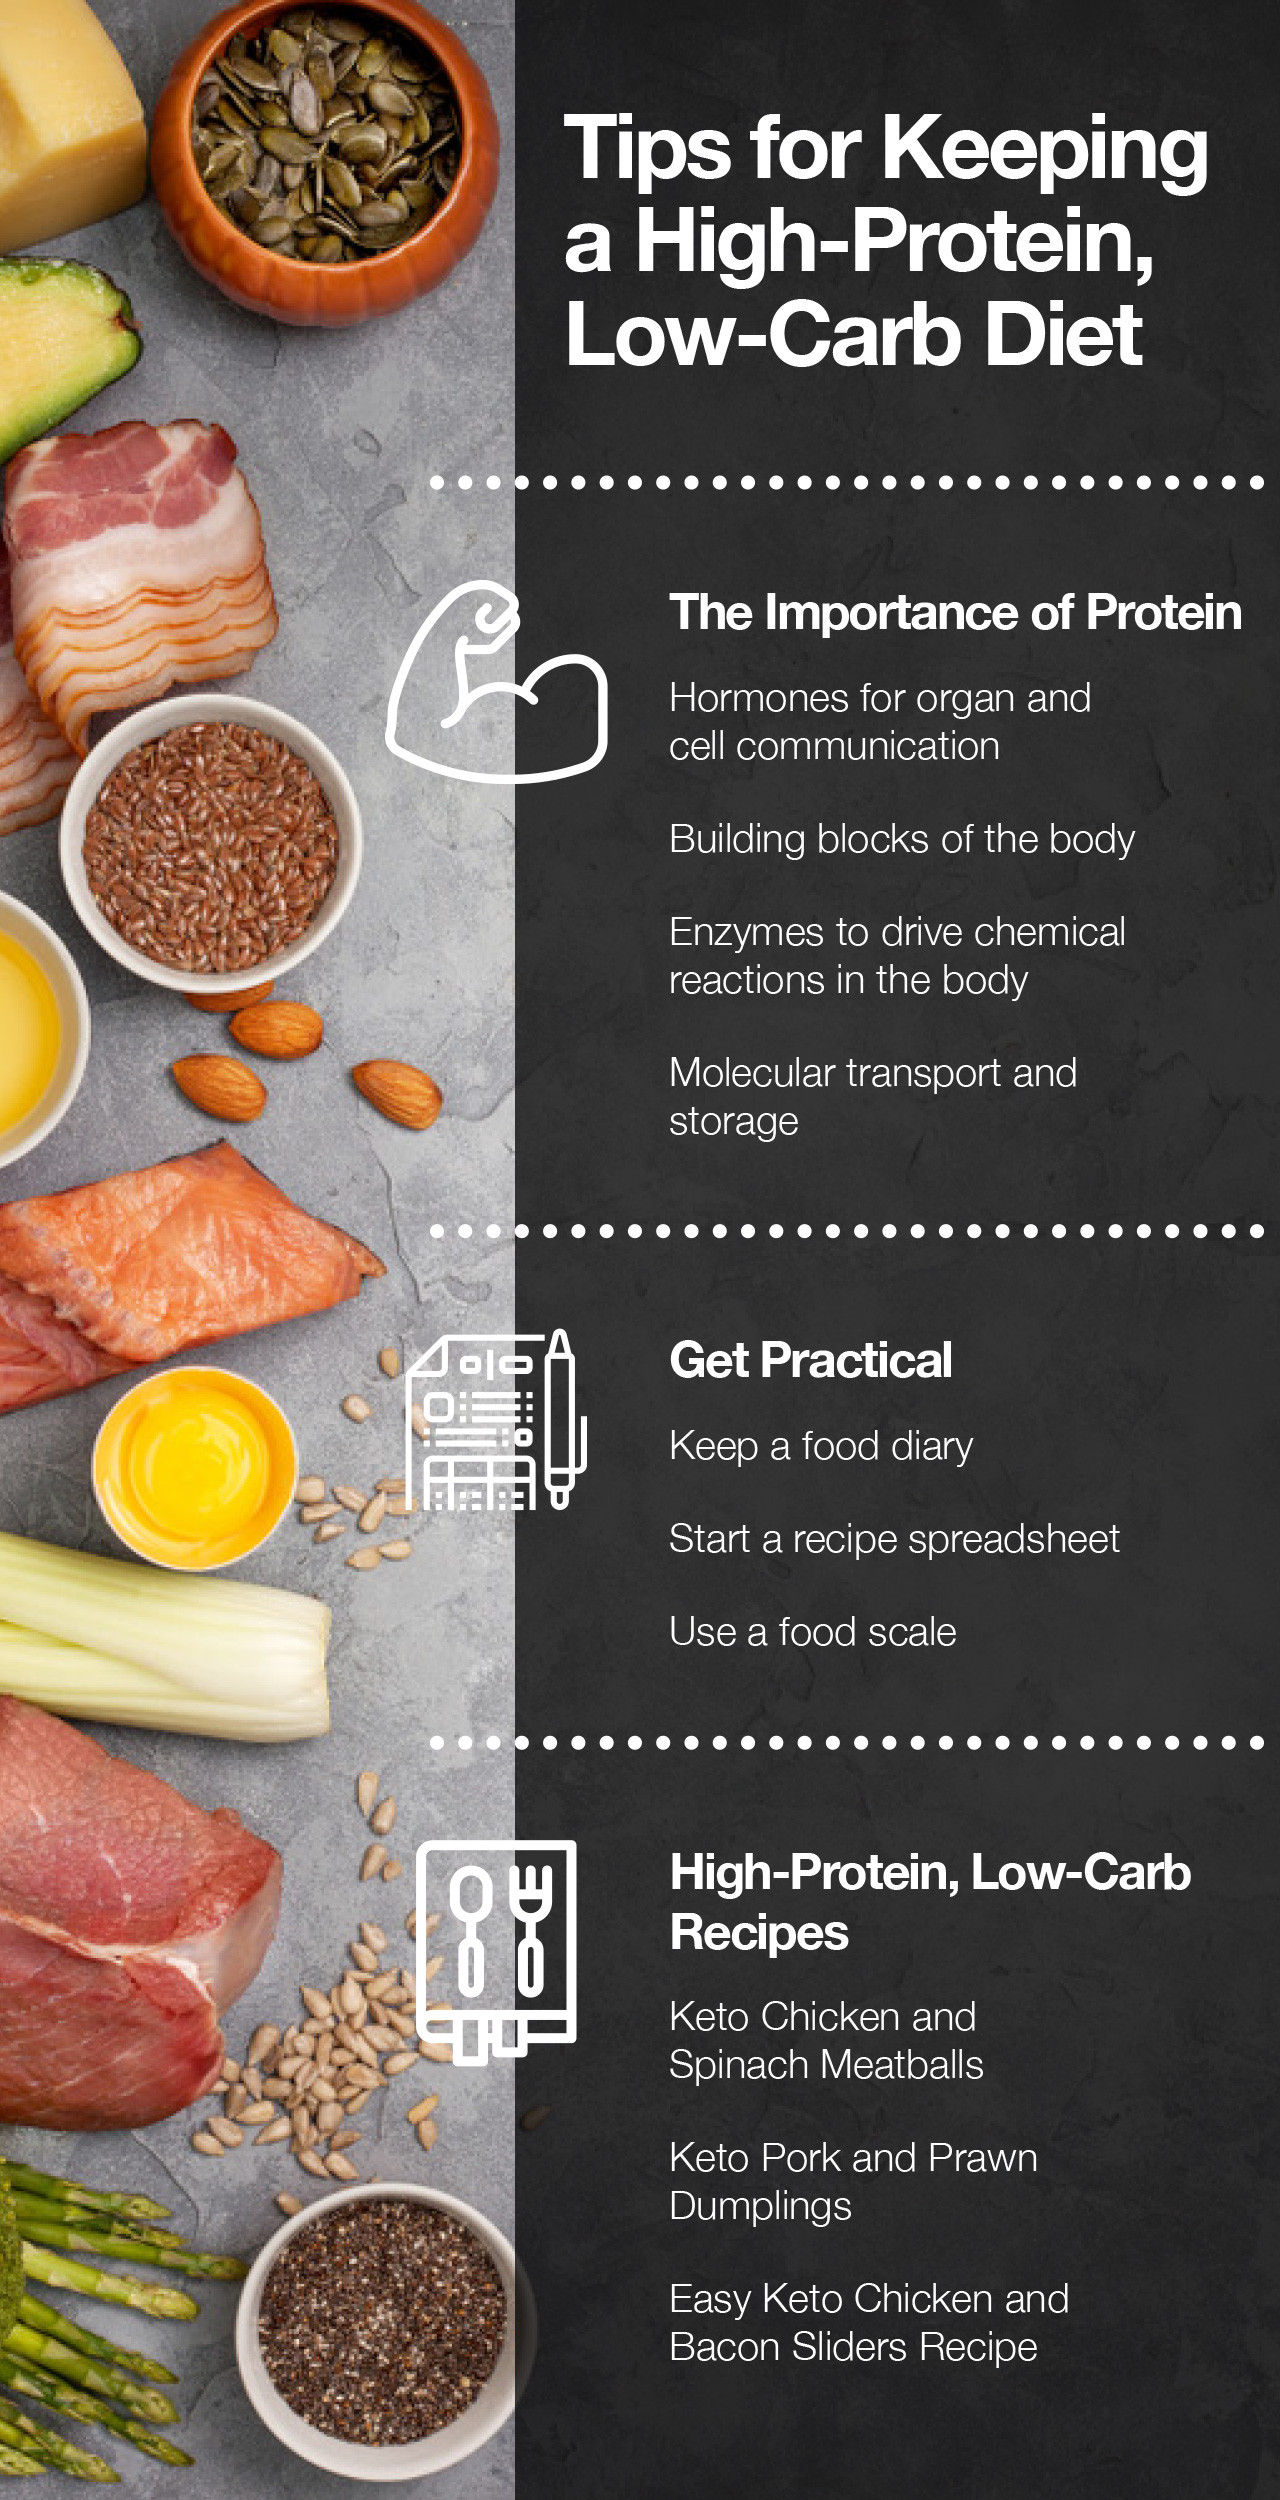 High Protein Low Carb Diet  Tips for Keeping a High Protein Low Carb Diet Fitoru